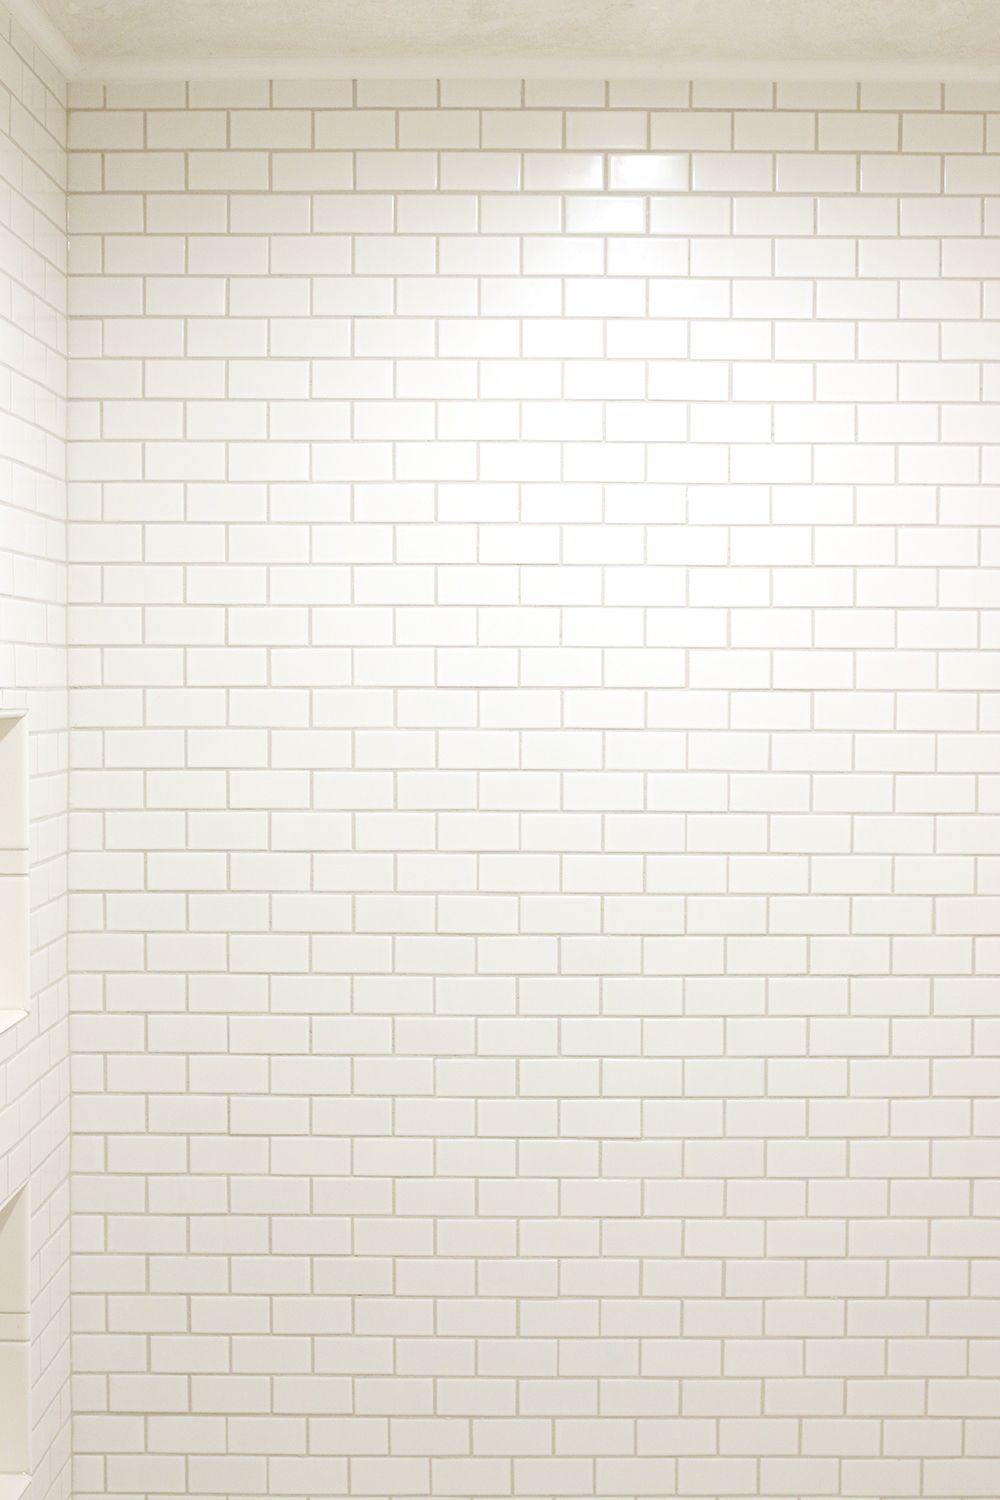 A Cool Hack For Removing Grout Haze | Grout, Bathroom tiling and Clever